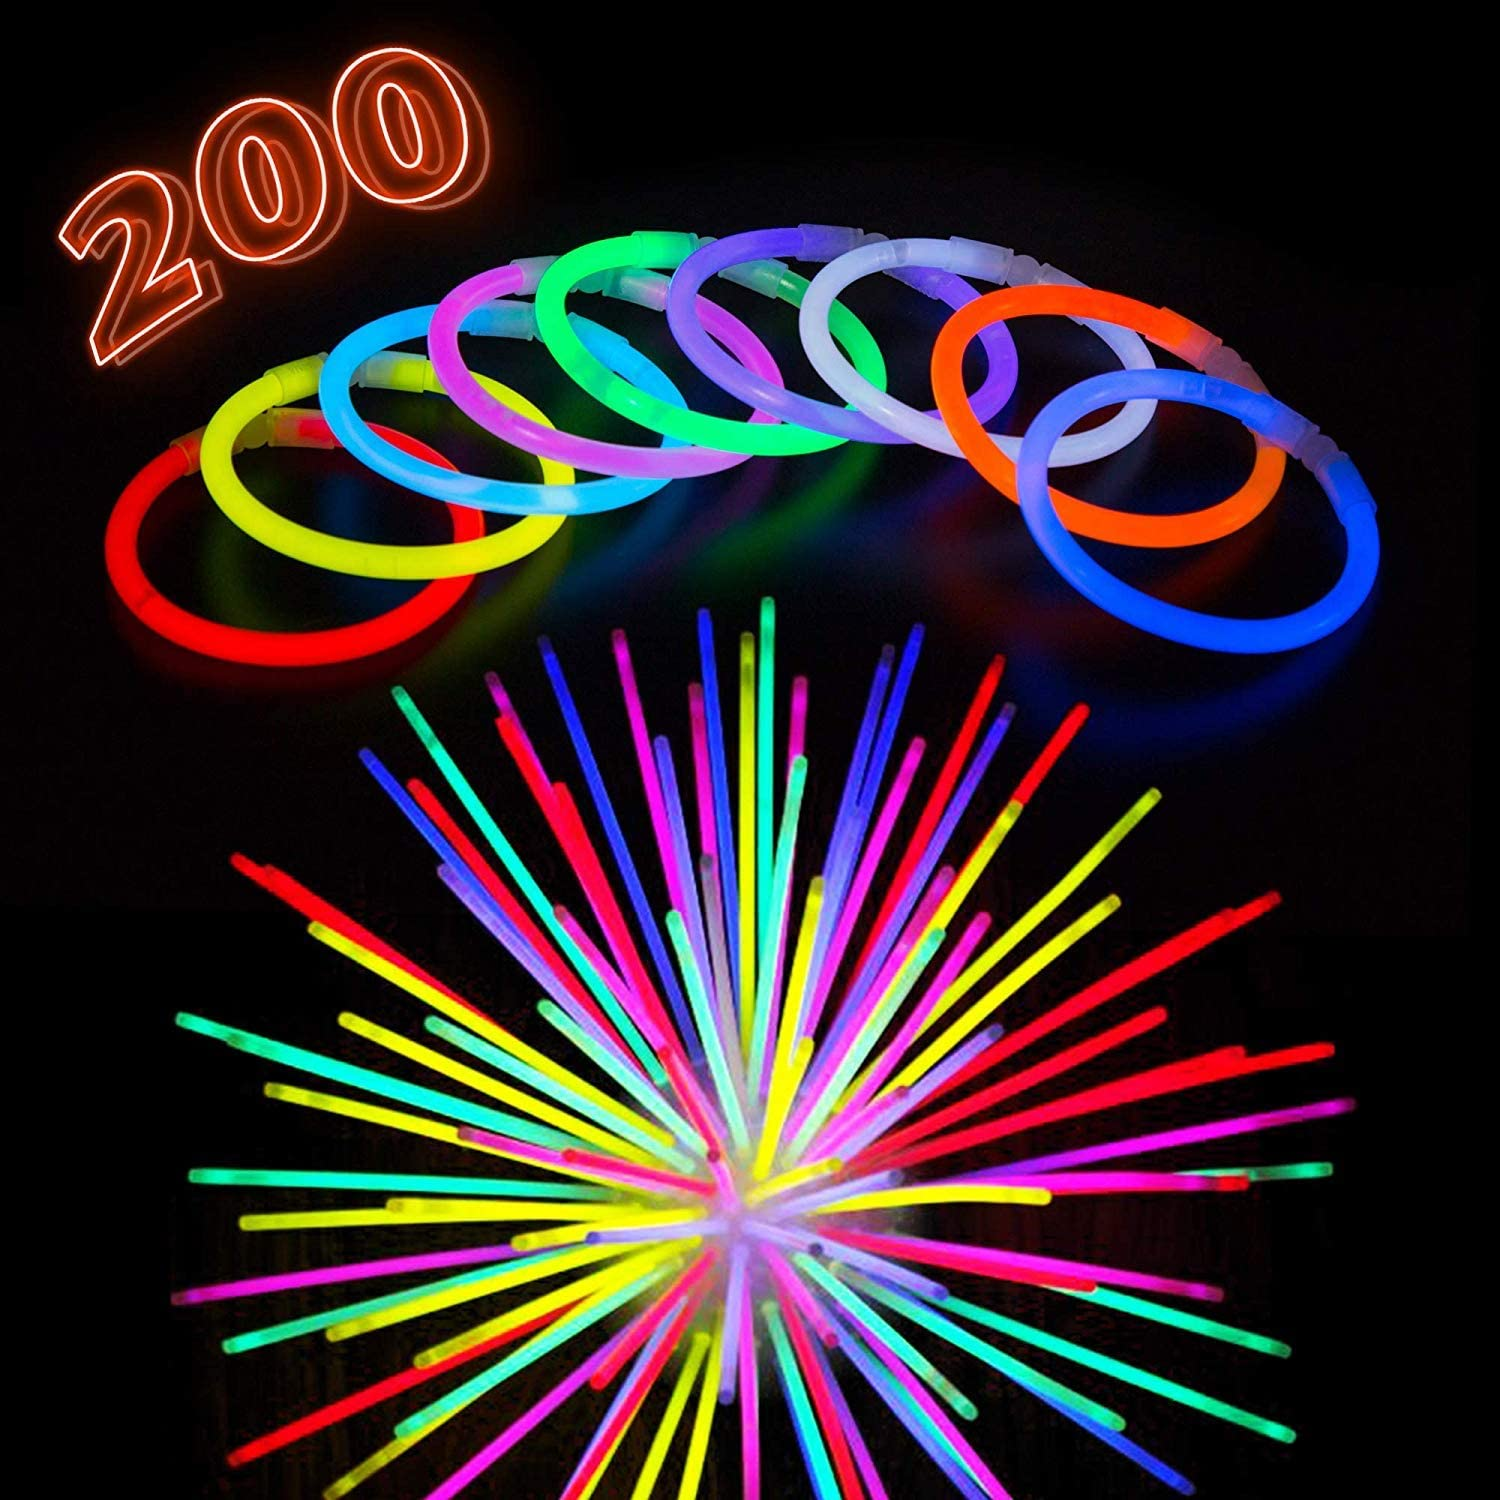 Glowing Goggles Butterfly for Party Supplies-Multi Coloured WedDecor 100 Premium Quality Glow Sticks Party Pack 8 Inch with Connectors to Make Neon Bracelets 224pcs Fluorescent Necklace